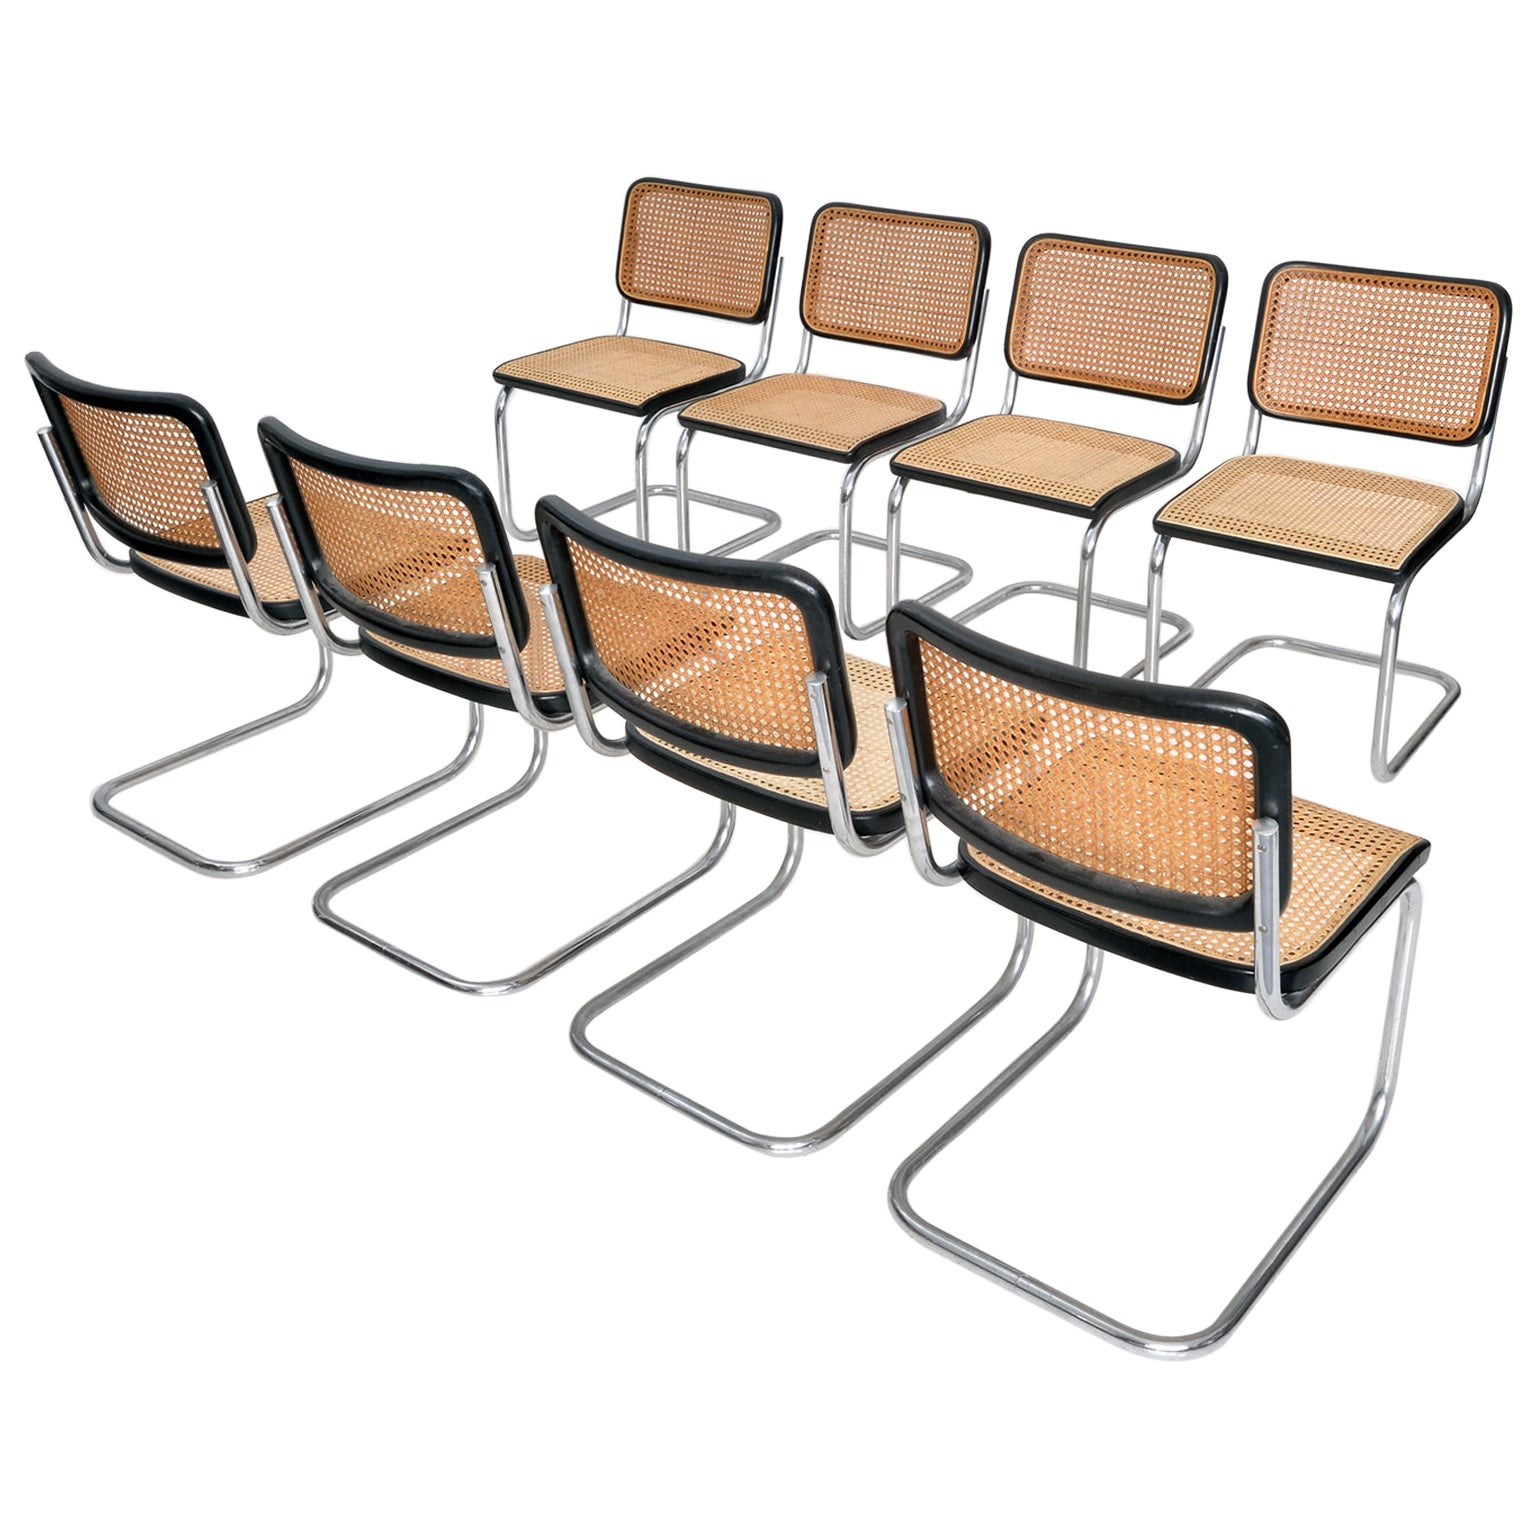 Eight Tubular Steel Cantilever Chairs by Marcel Breuer Manufactured by Thonet